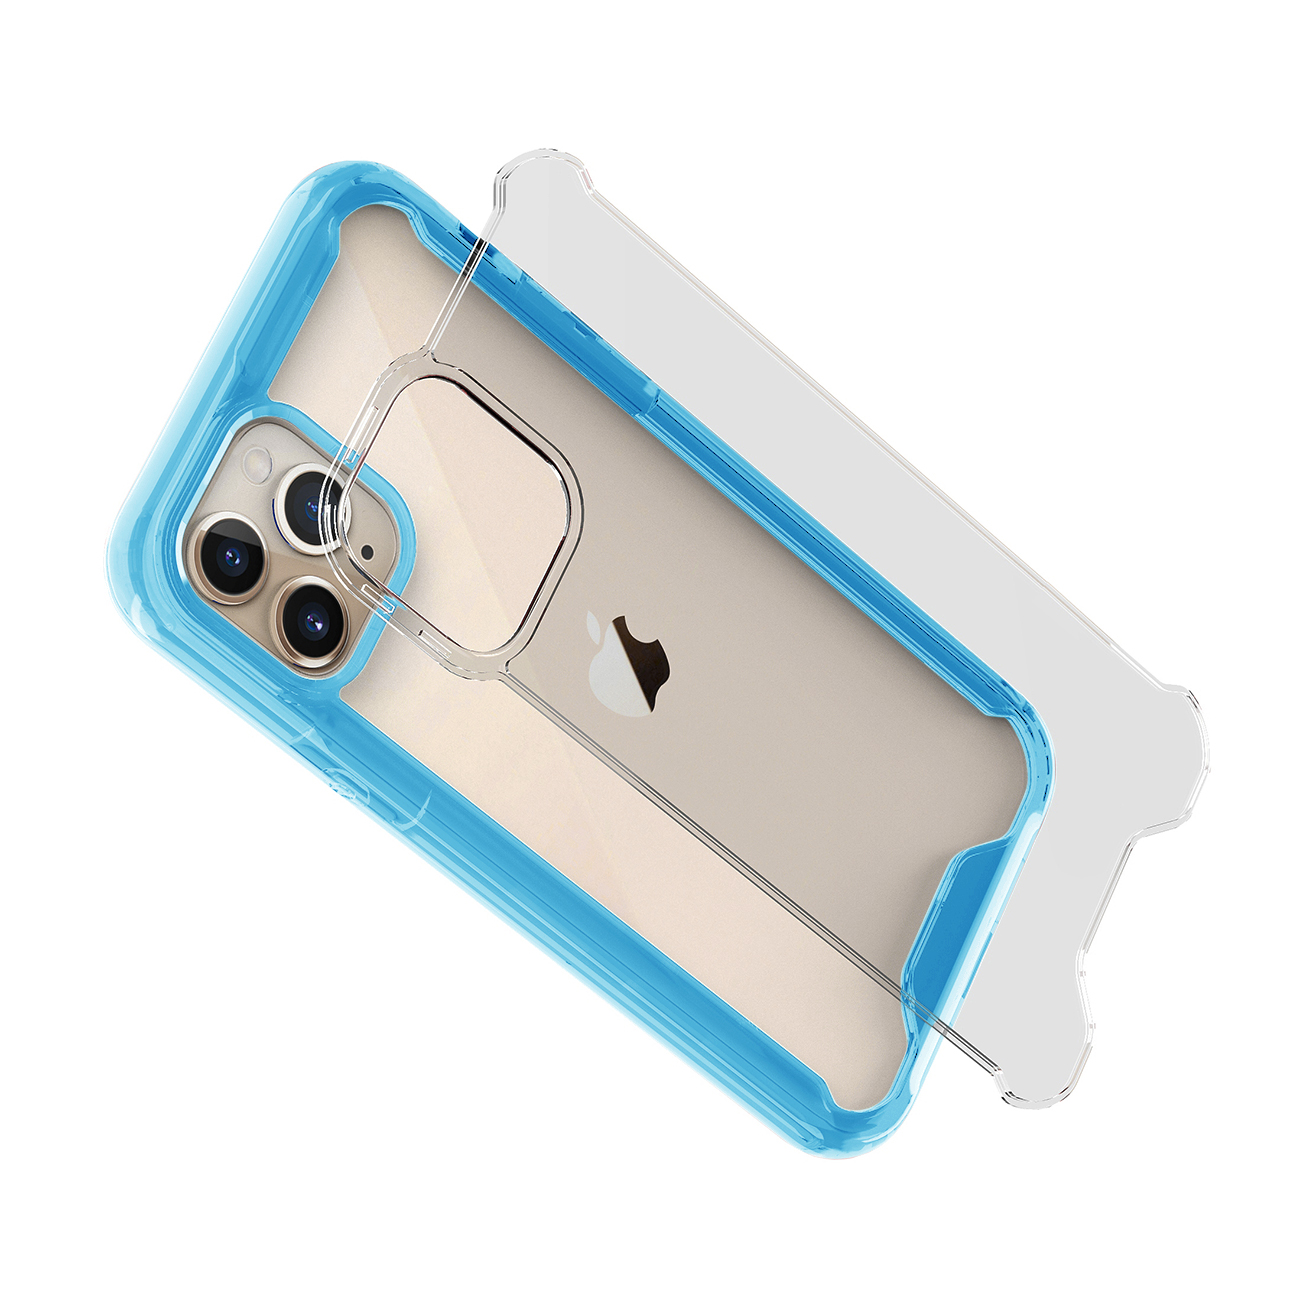 APPLE IPHONE 11 PRO MAX High Quality TPU Case In Blue